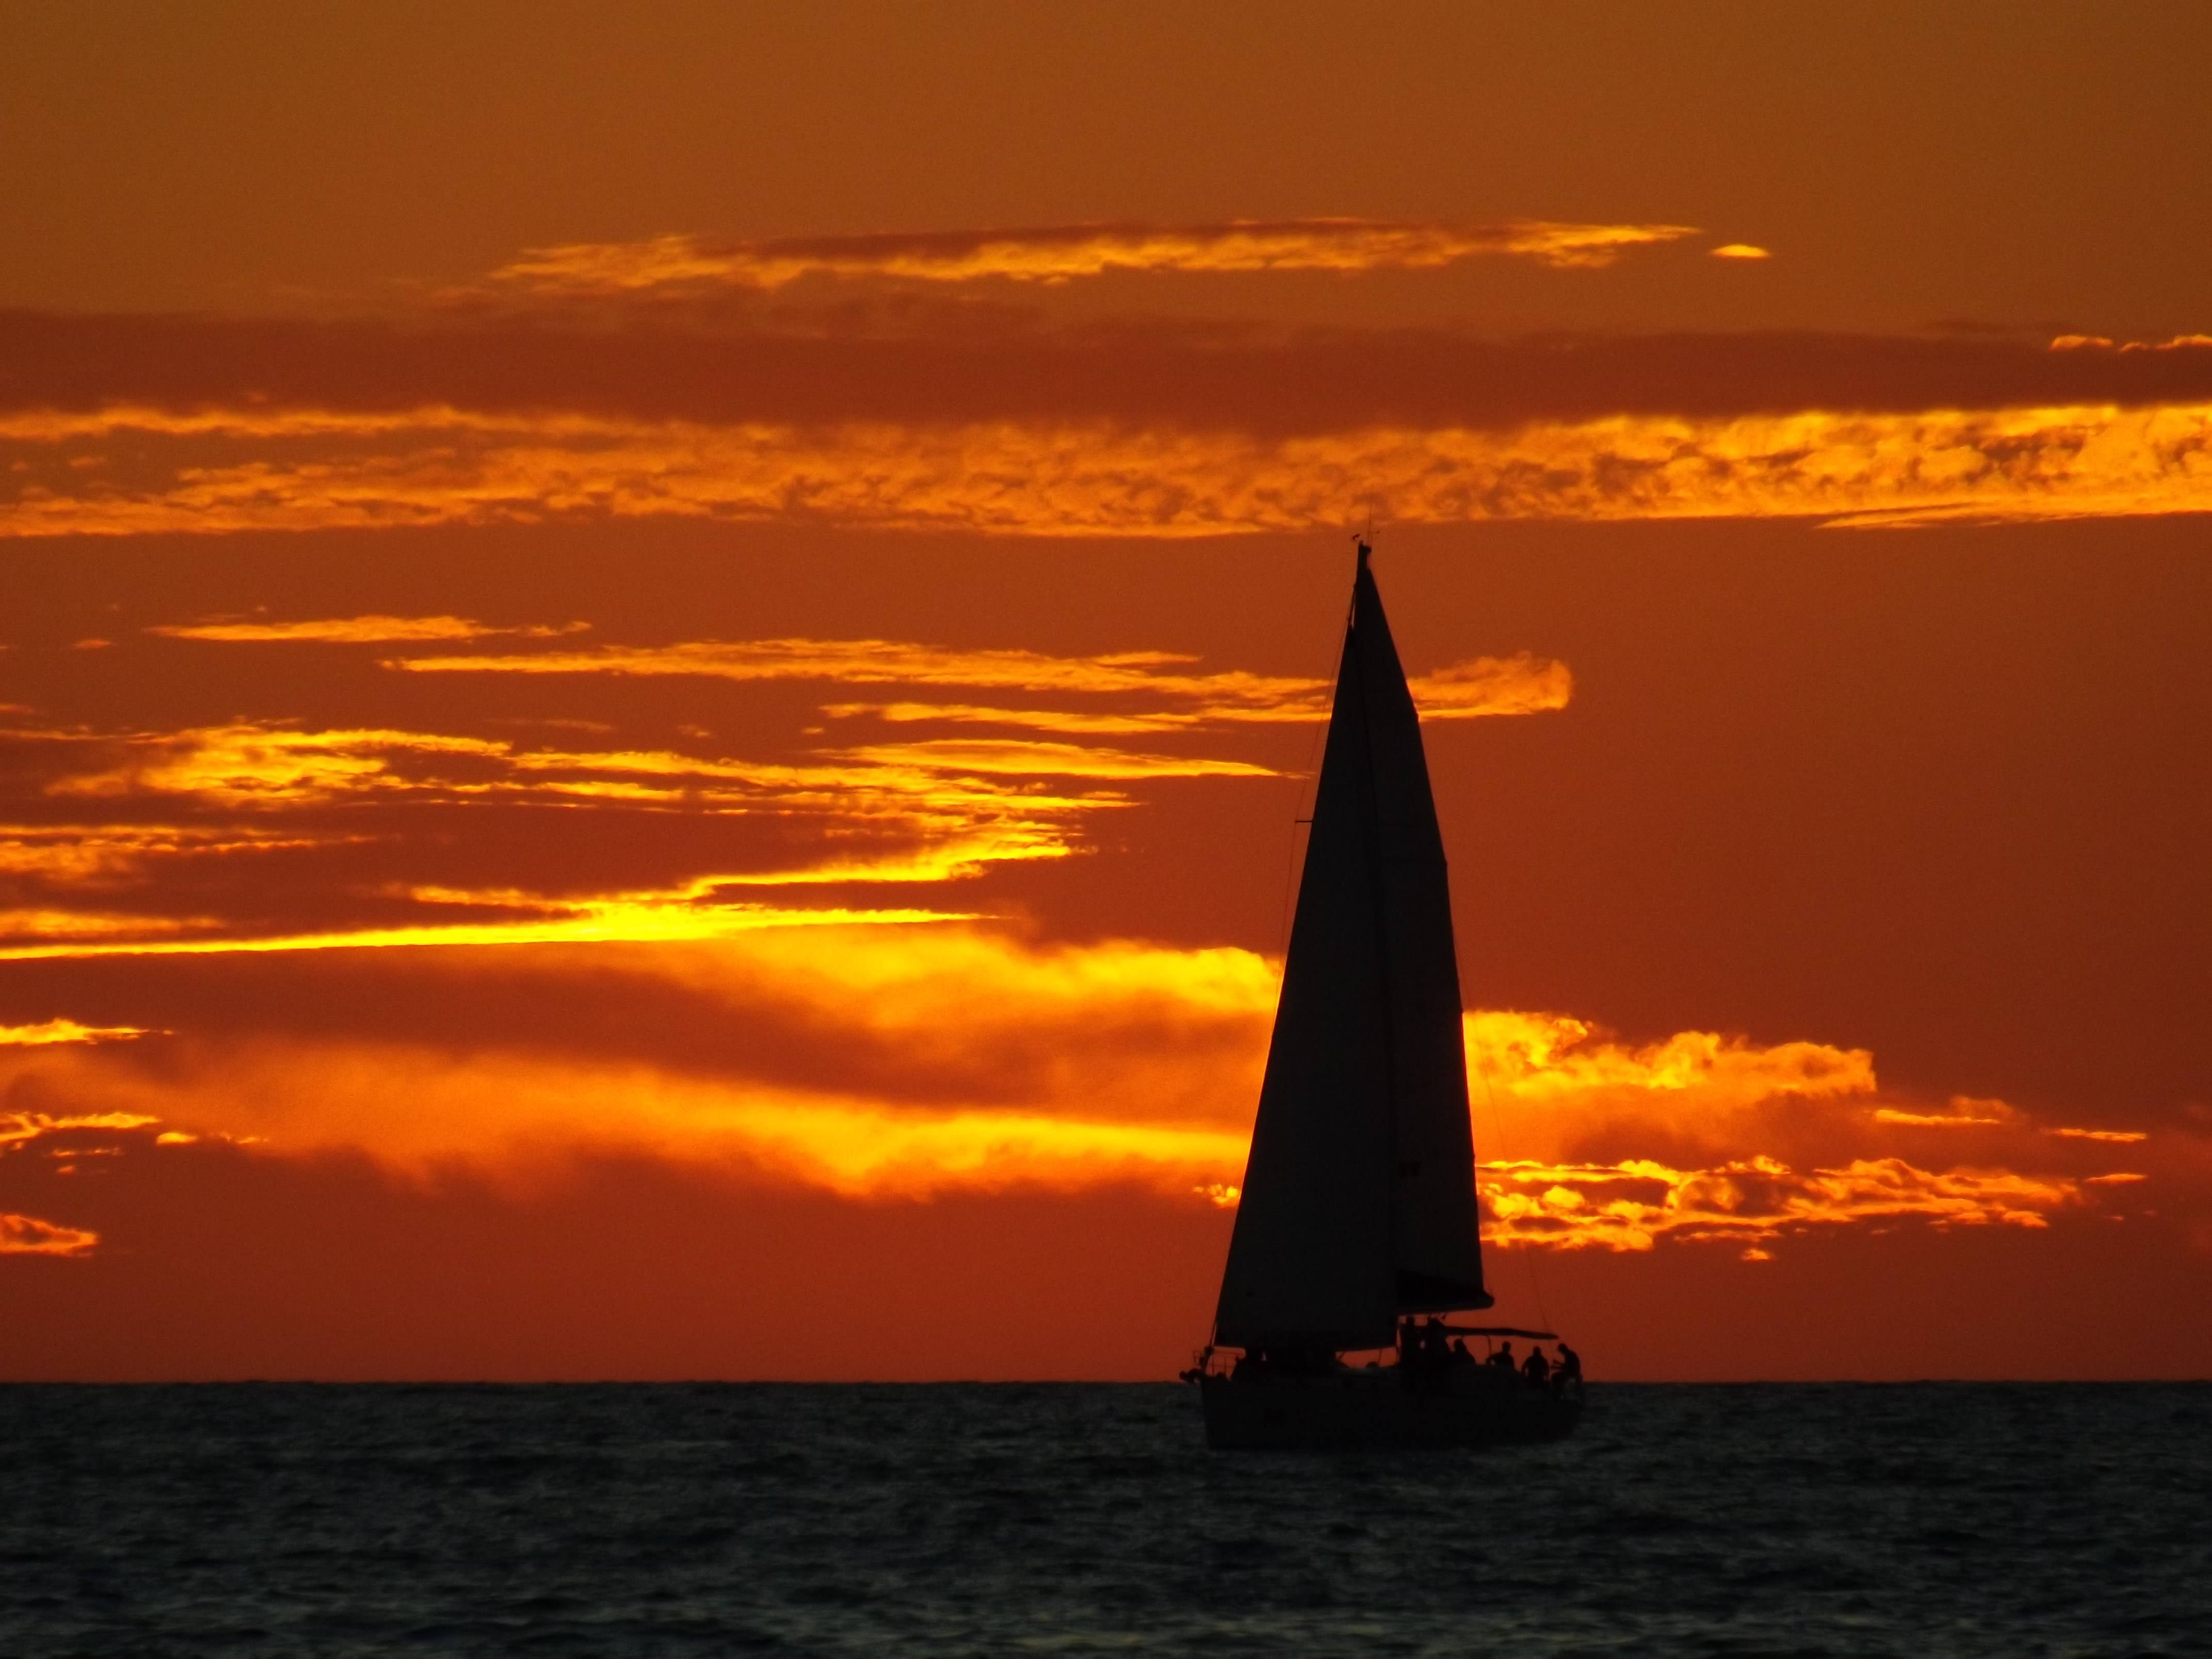 Sunset sailing - Mexico